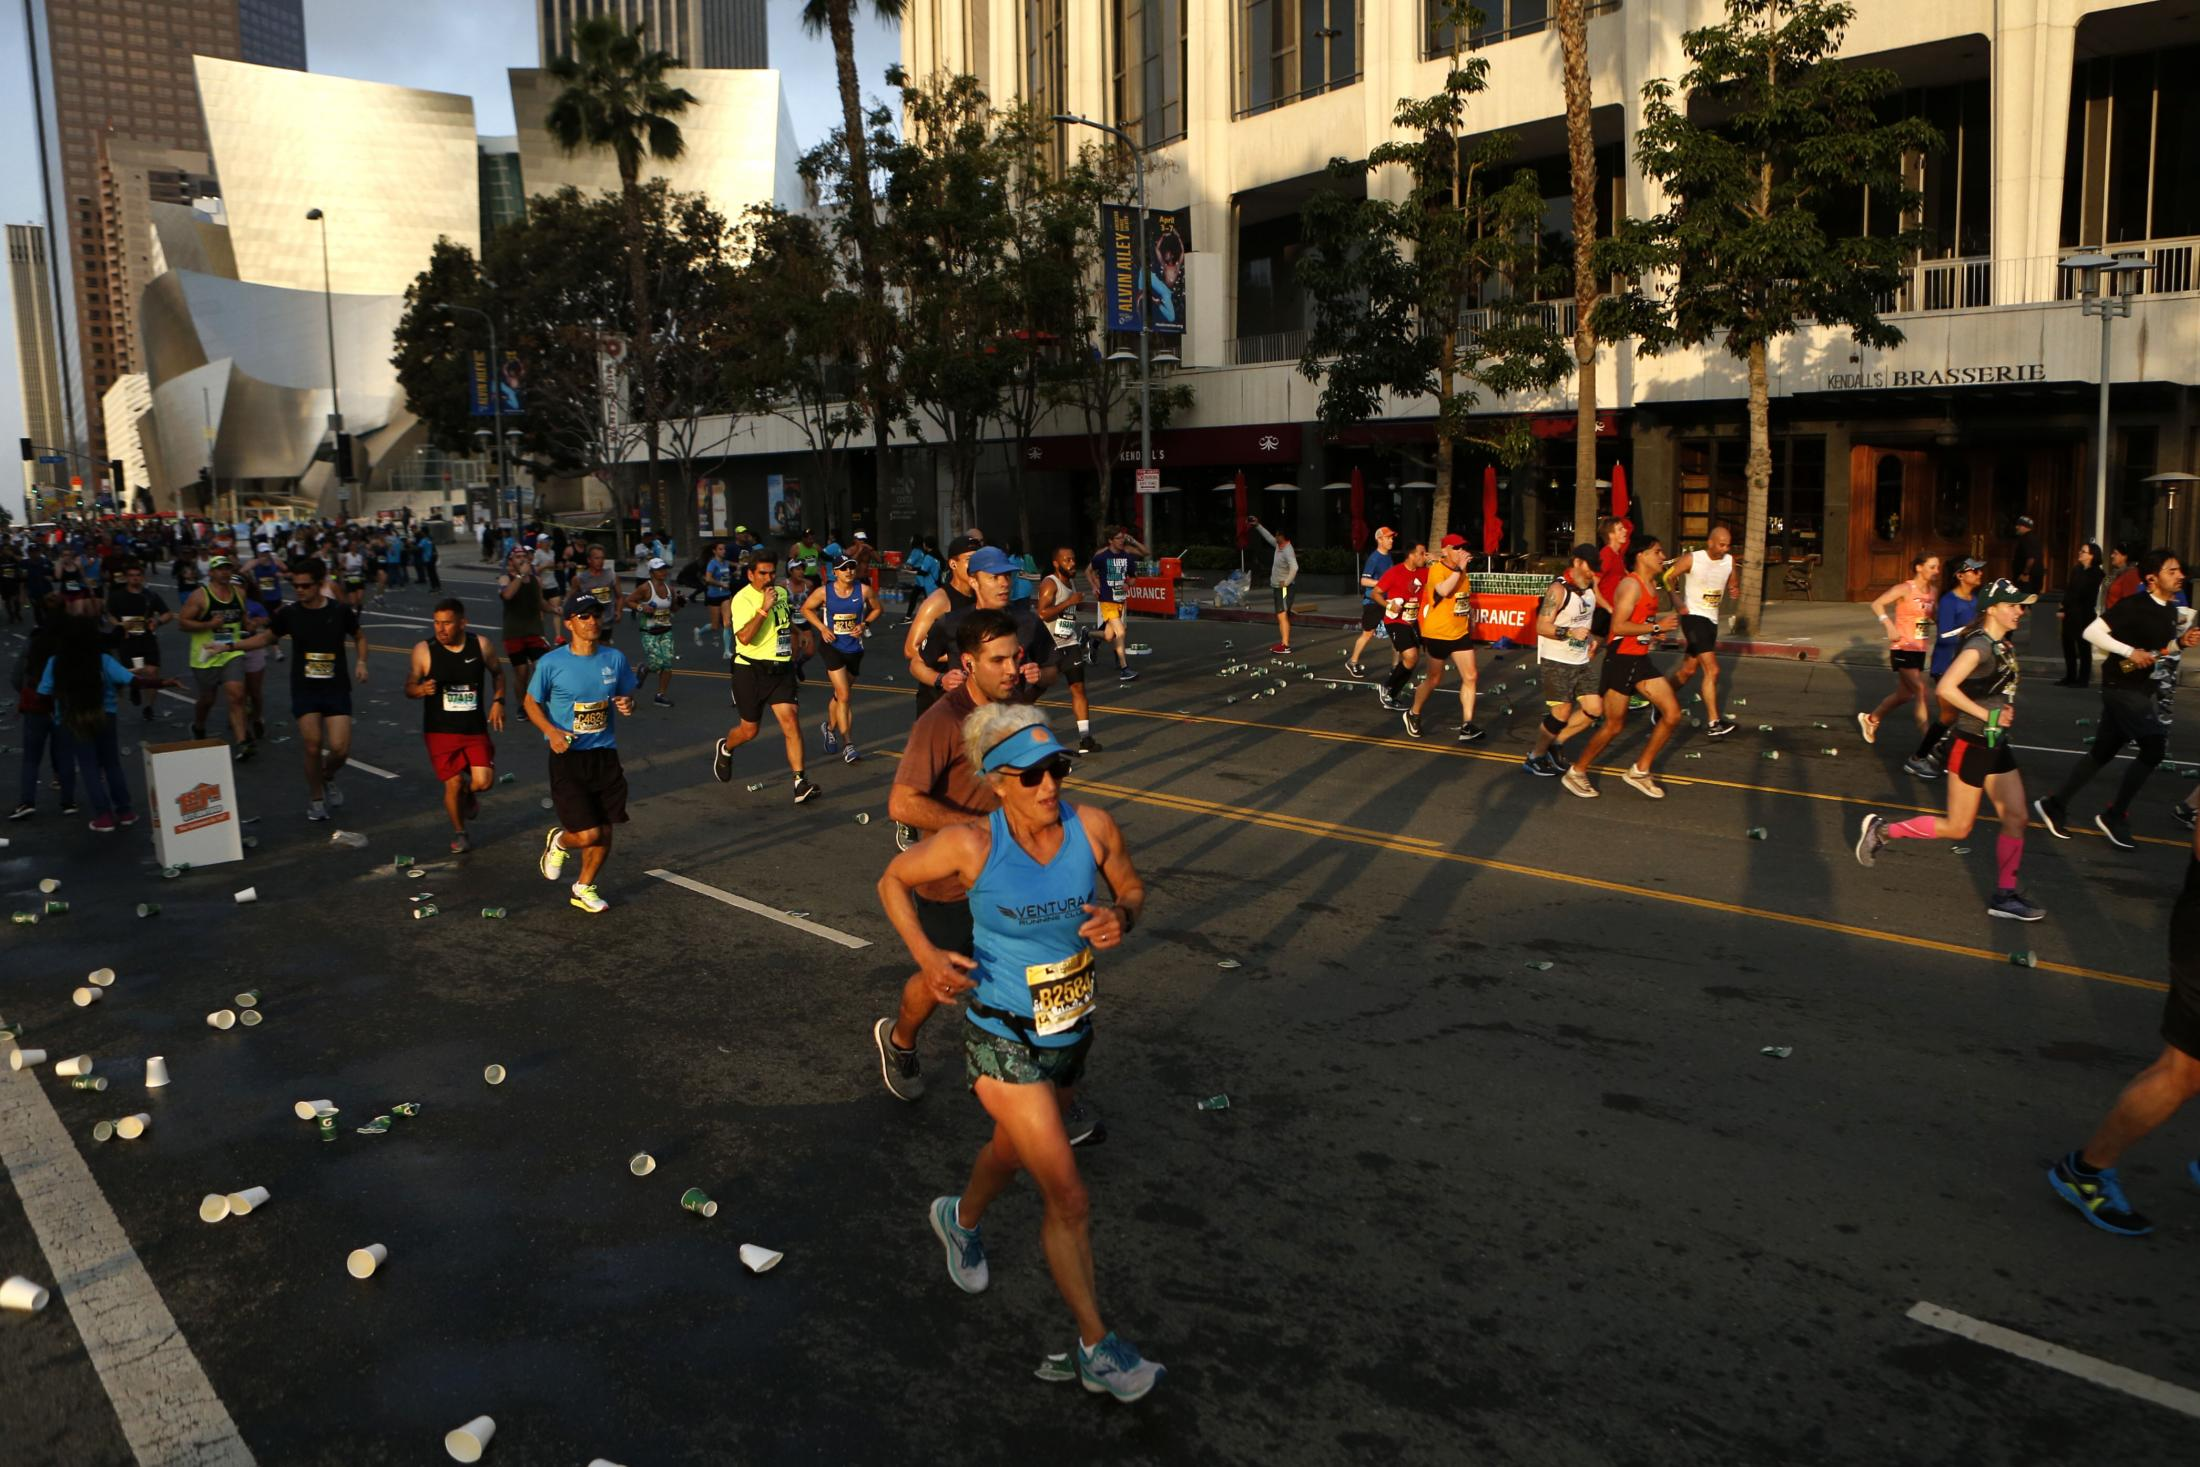 LOS ANGELES, CALIFORNIA - MARCH 24:   Runners make their way down Grand Avenue during the 2019 Skechers Performance Los Angeles Marathon on March 24, 2019 in Los Angeles, California. The race, run annually in March, takes runners from Dodger Stadium near downtown Los Angeles, through Hollywood and Beverly Hills to Santa Monica, passing many LA landmarks along the way. (Photo by Katharine Lotze/Getty Images)